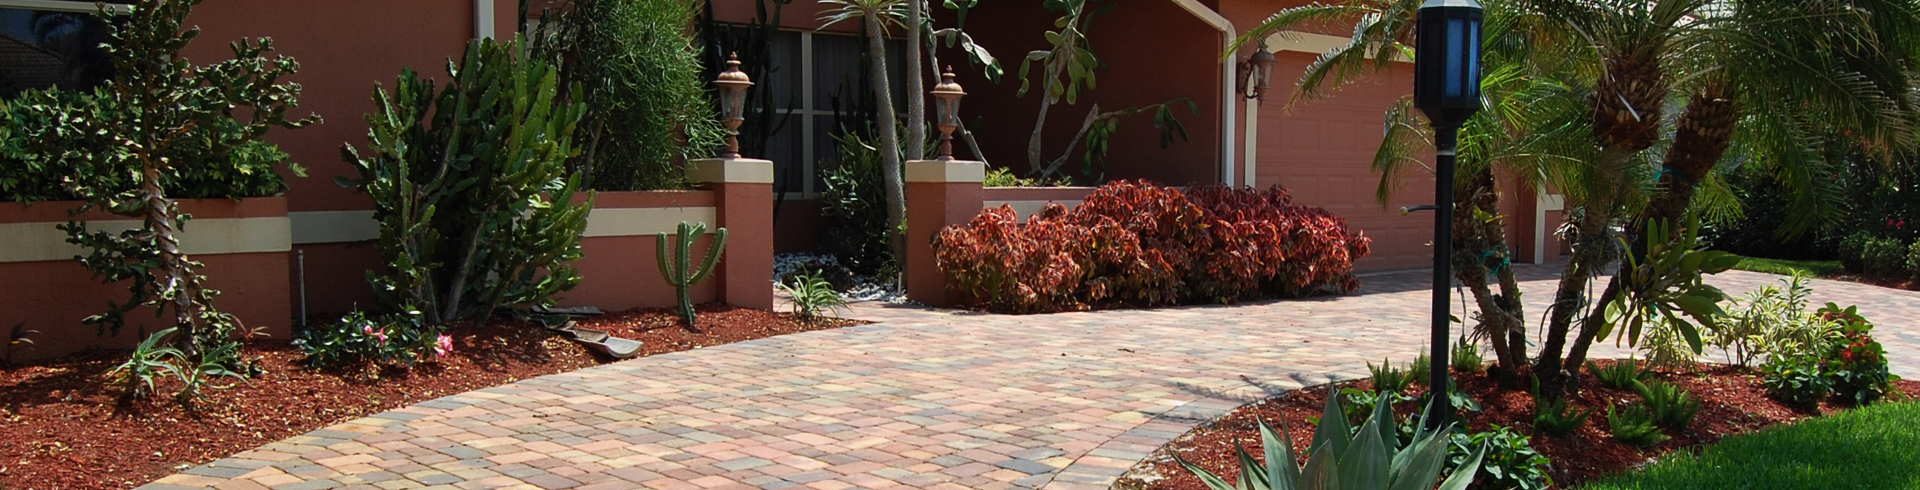 red colors paver driveway